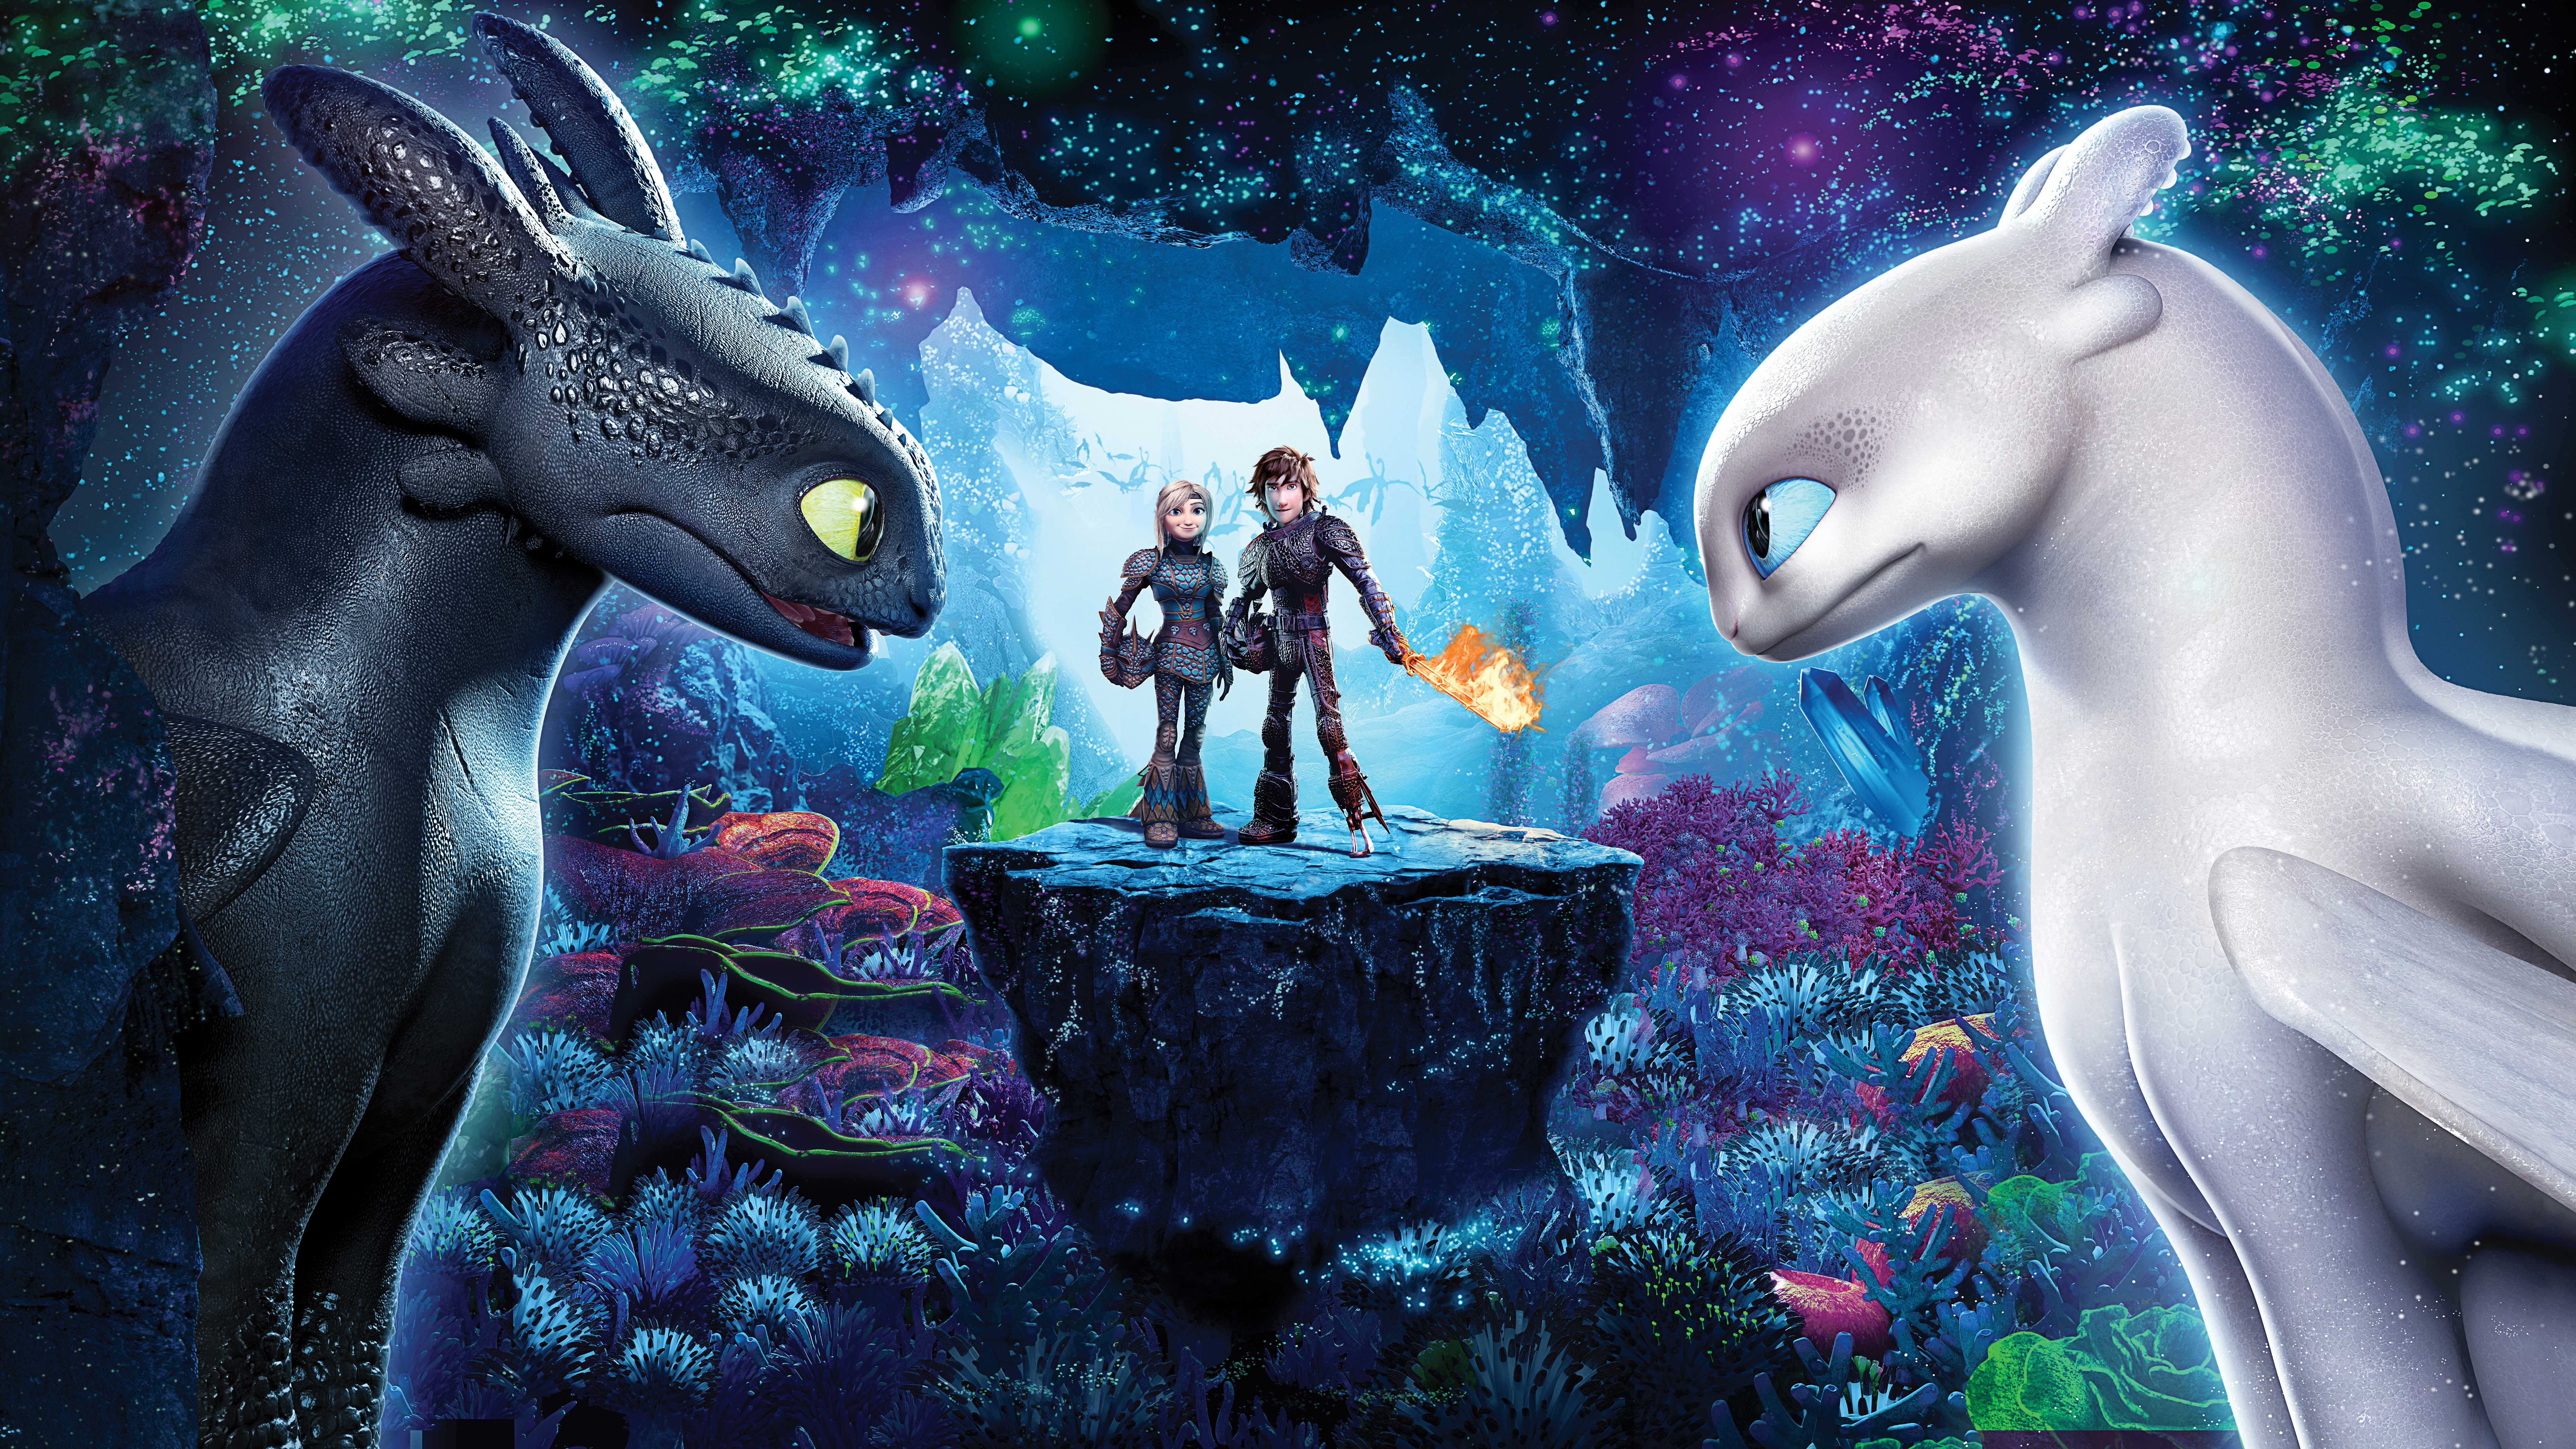 How to train your dragon 3 the hidden world 4k 8k - The world is yours wallpaper ...